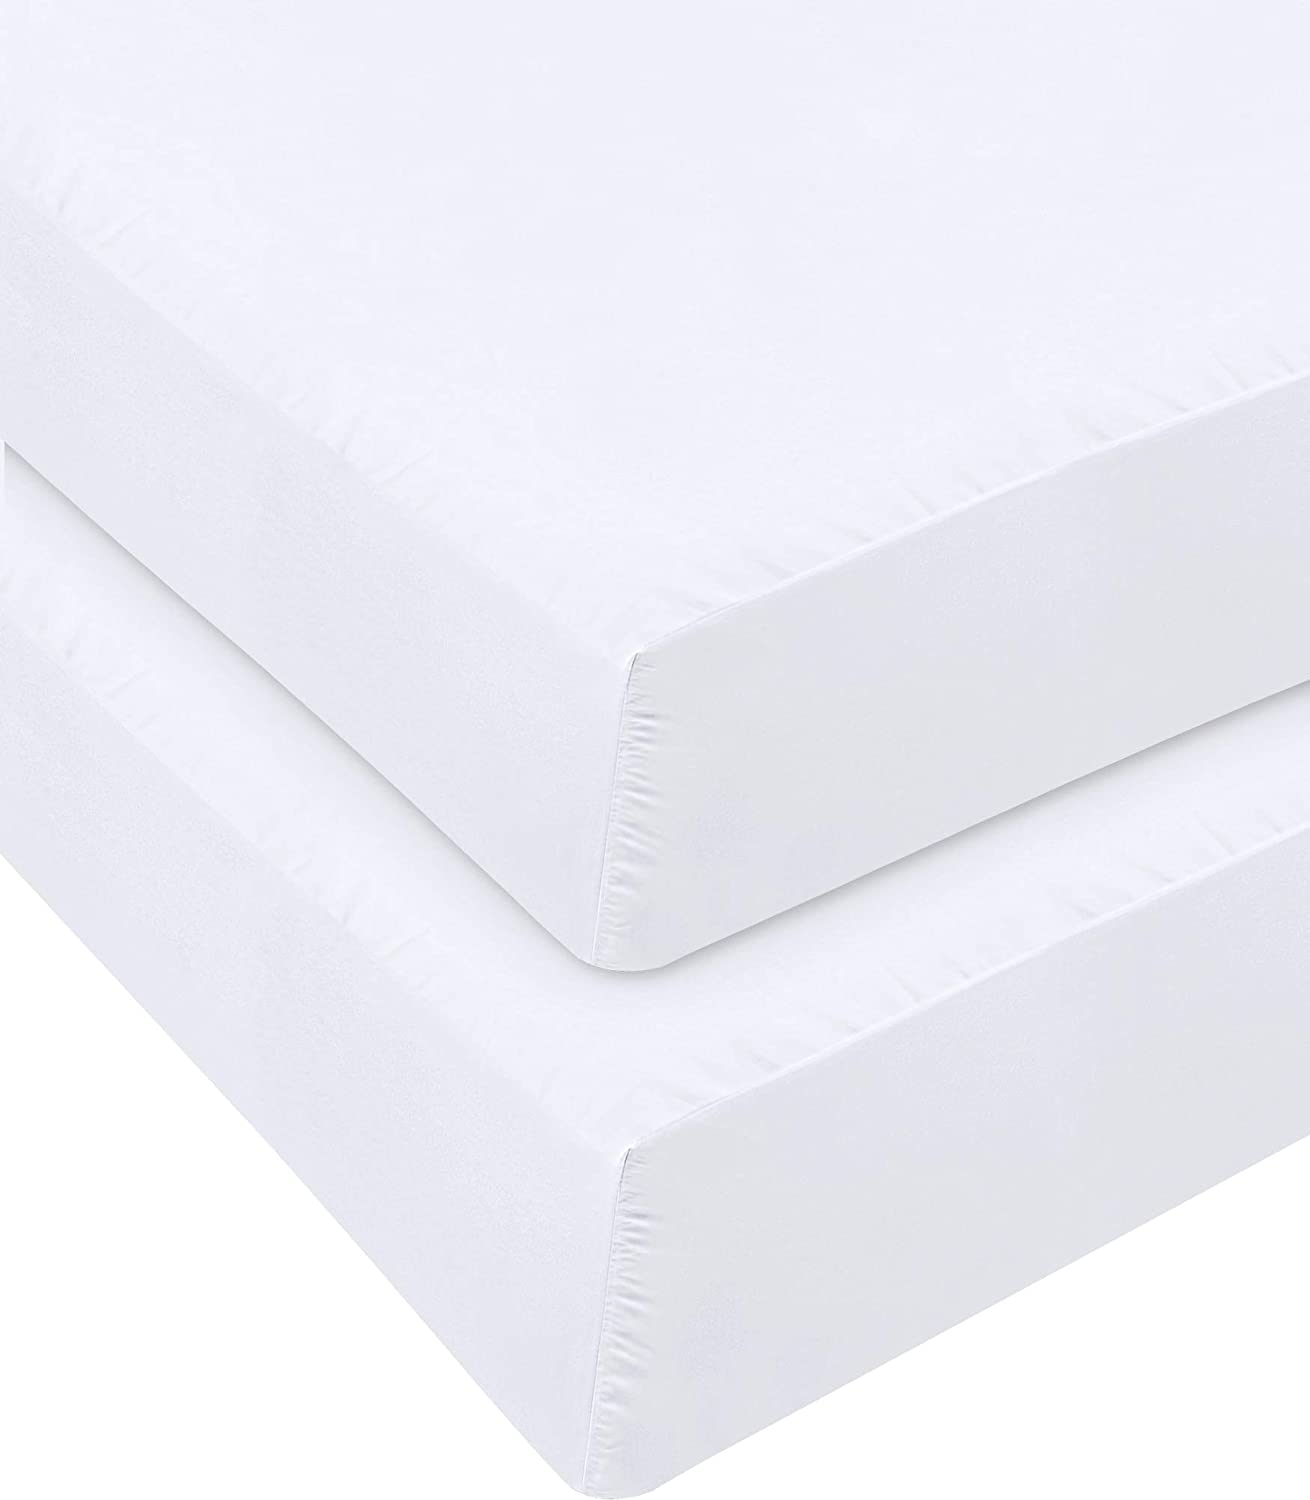 Utopia Bedding Fitted Sheet - Pack of 2 Bottom Sheets - Soft Brushed Microfiber - Deep Pockets, Shrinkage & Fade Resistant - Easy Care (Twin, White)